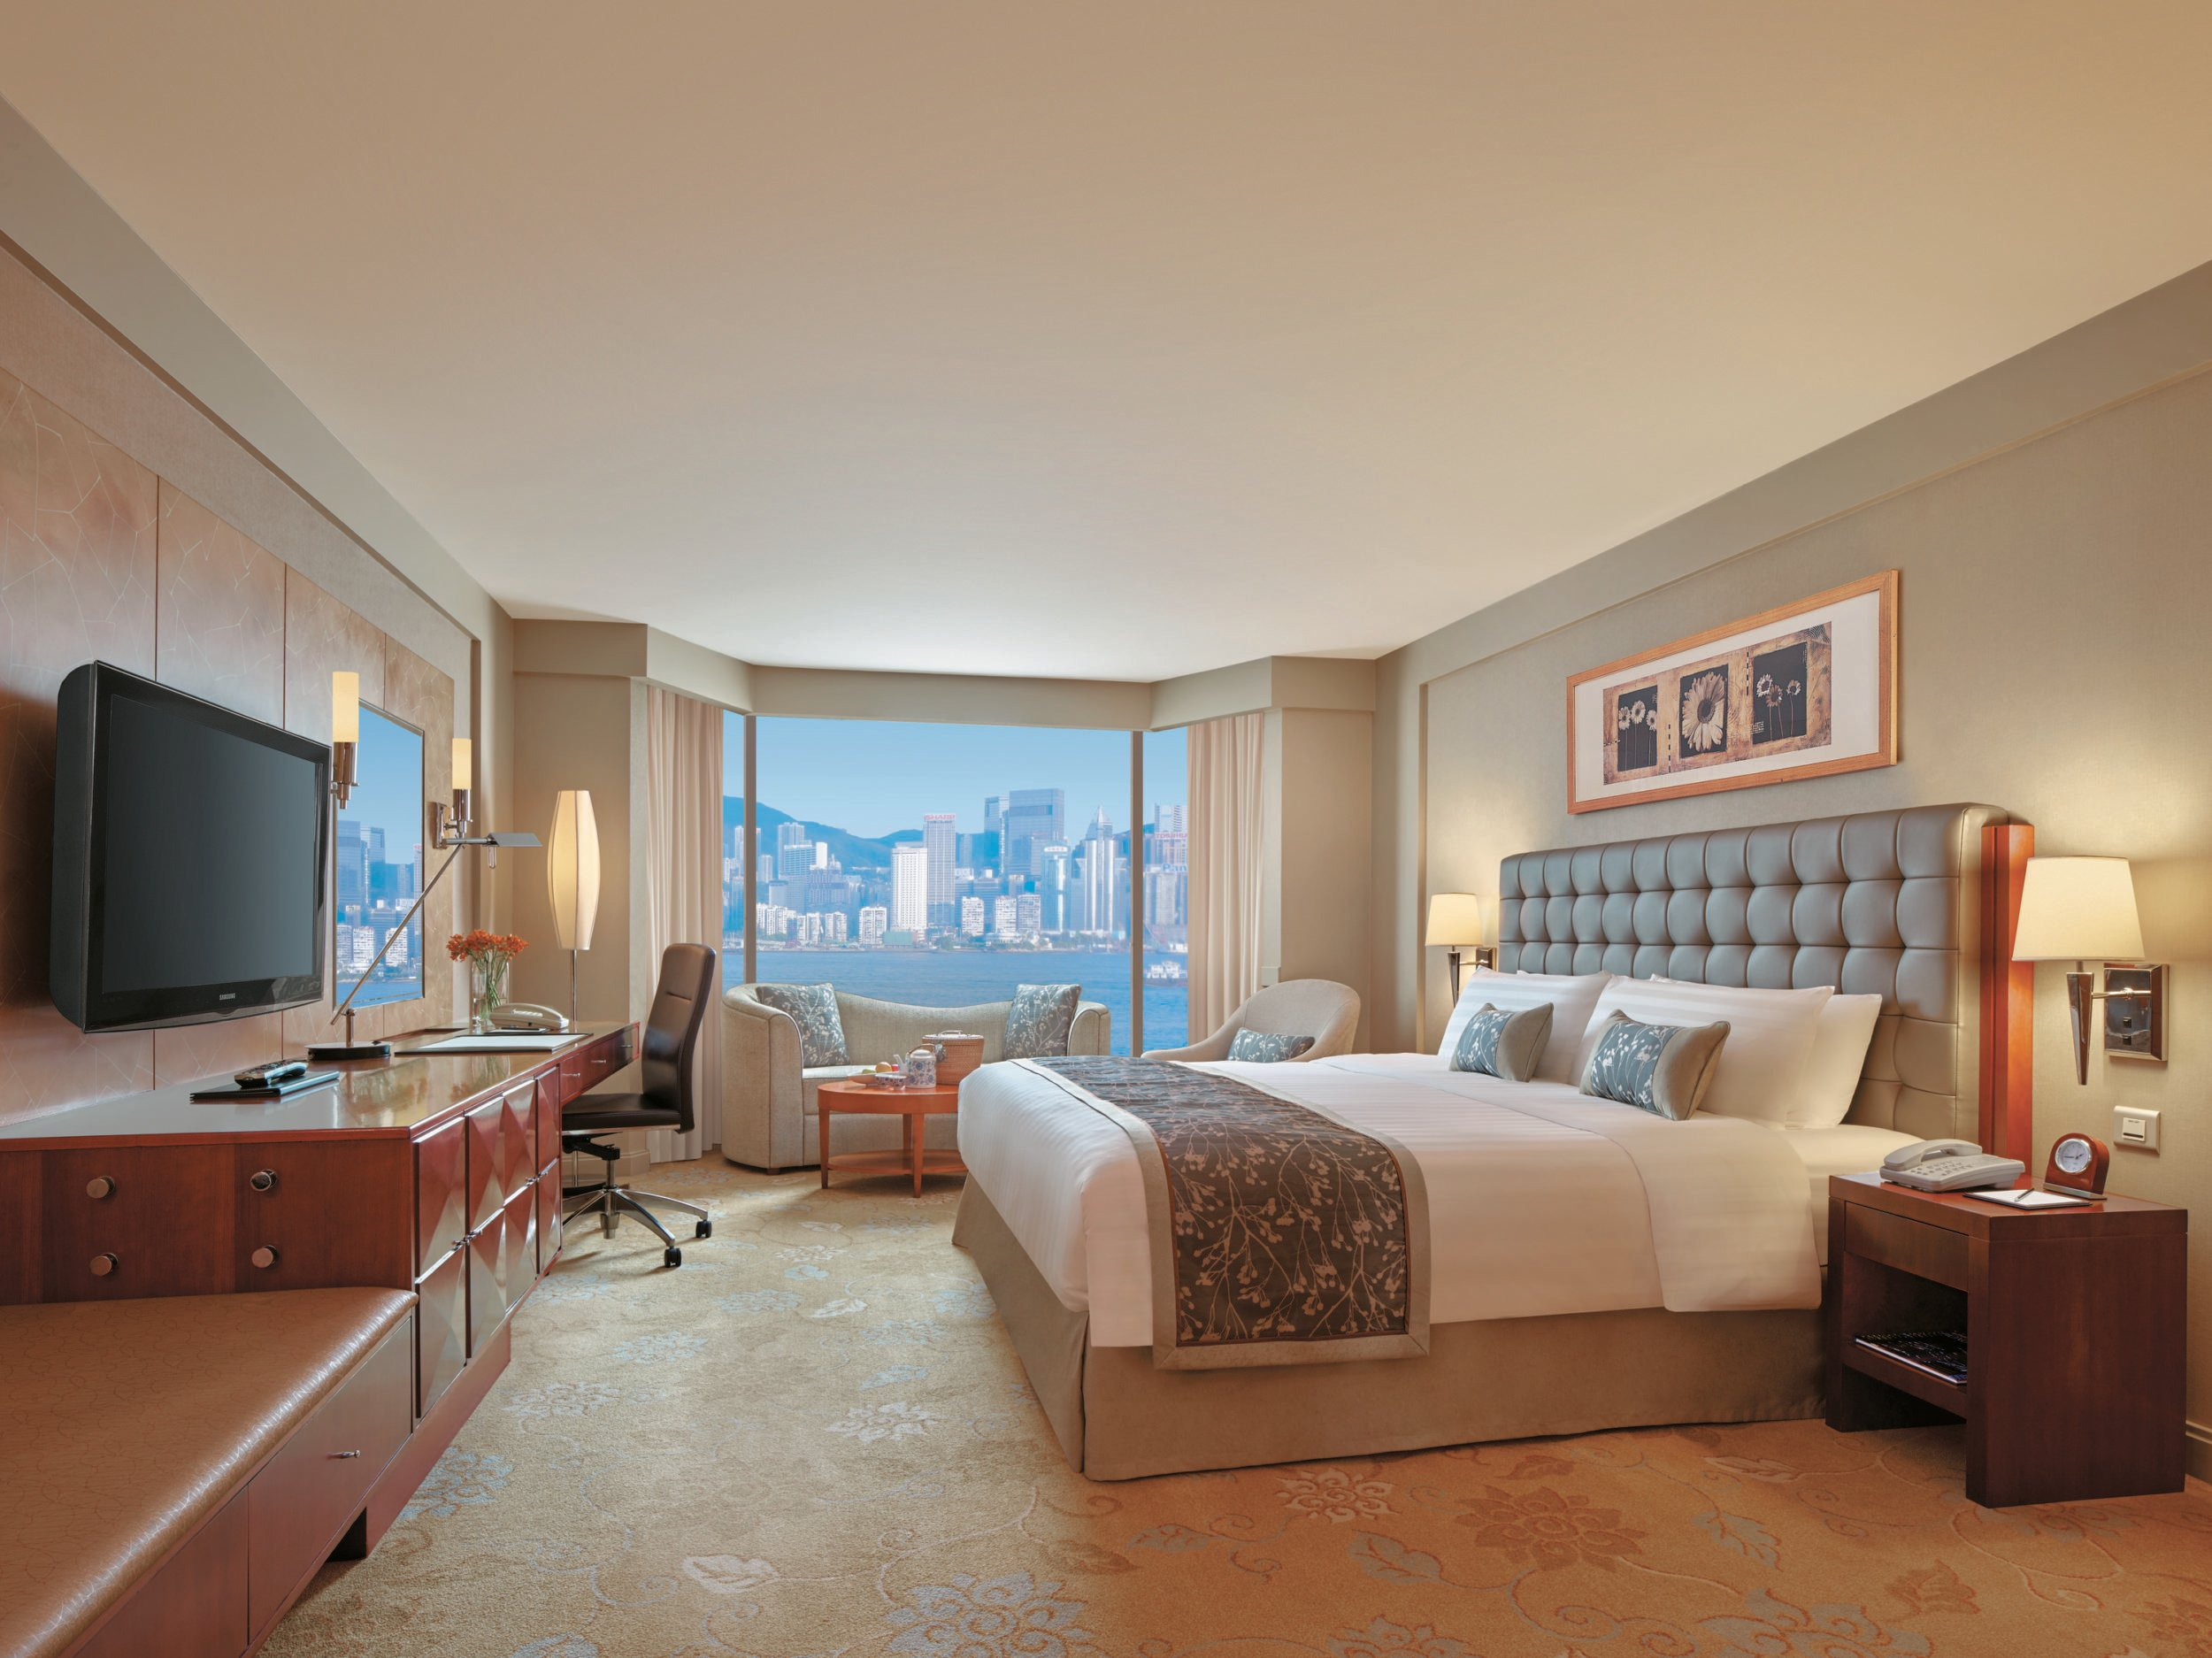 Kowloon Shangri-la is a great value for a family friendly luxury hotel in Hong Kong.